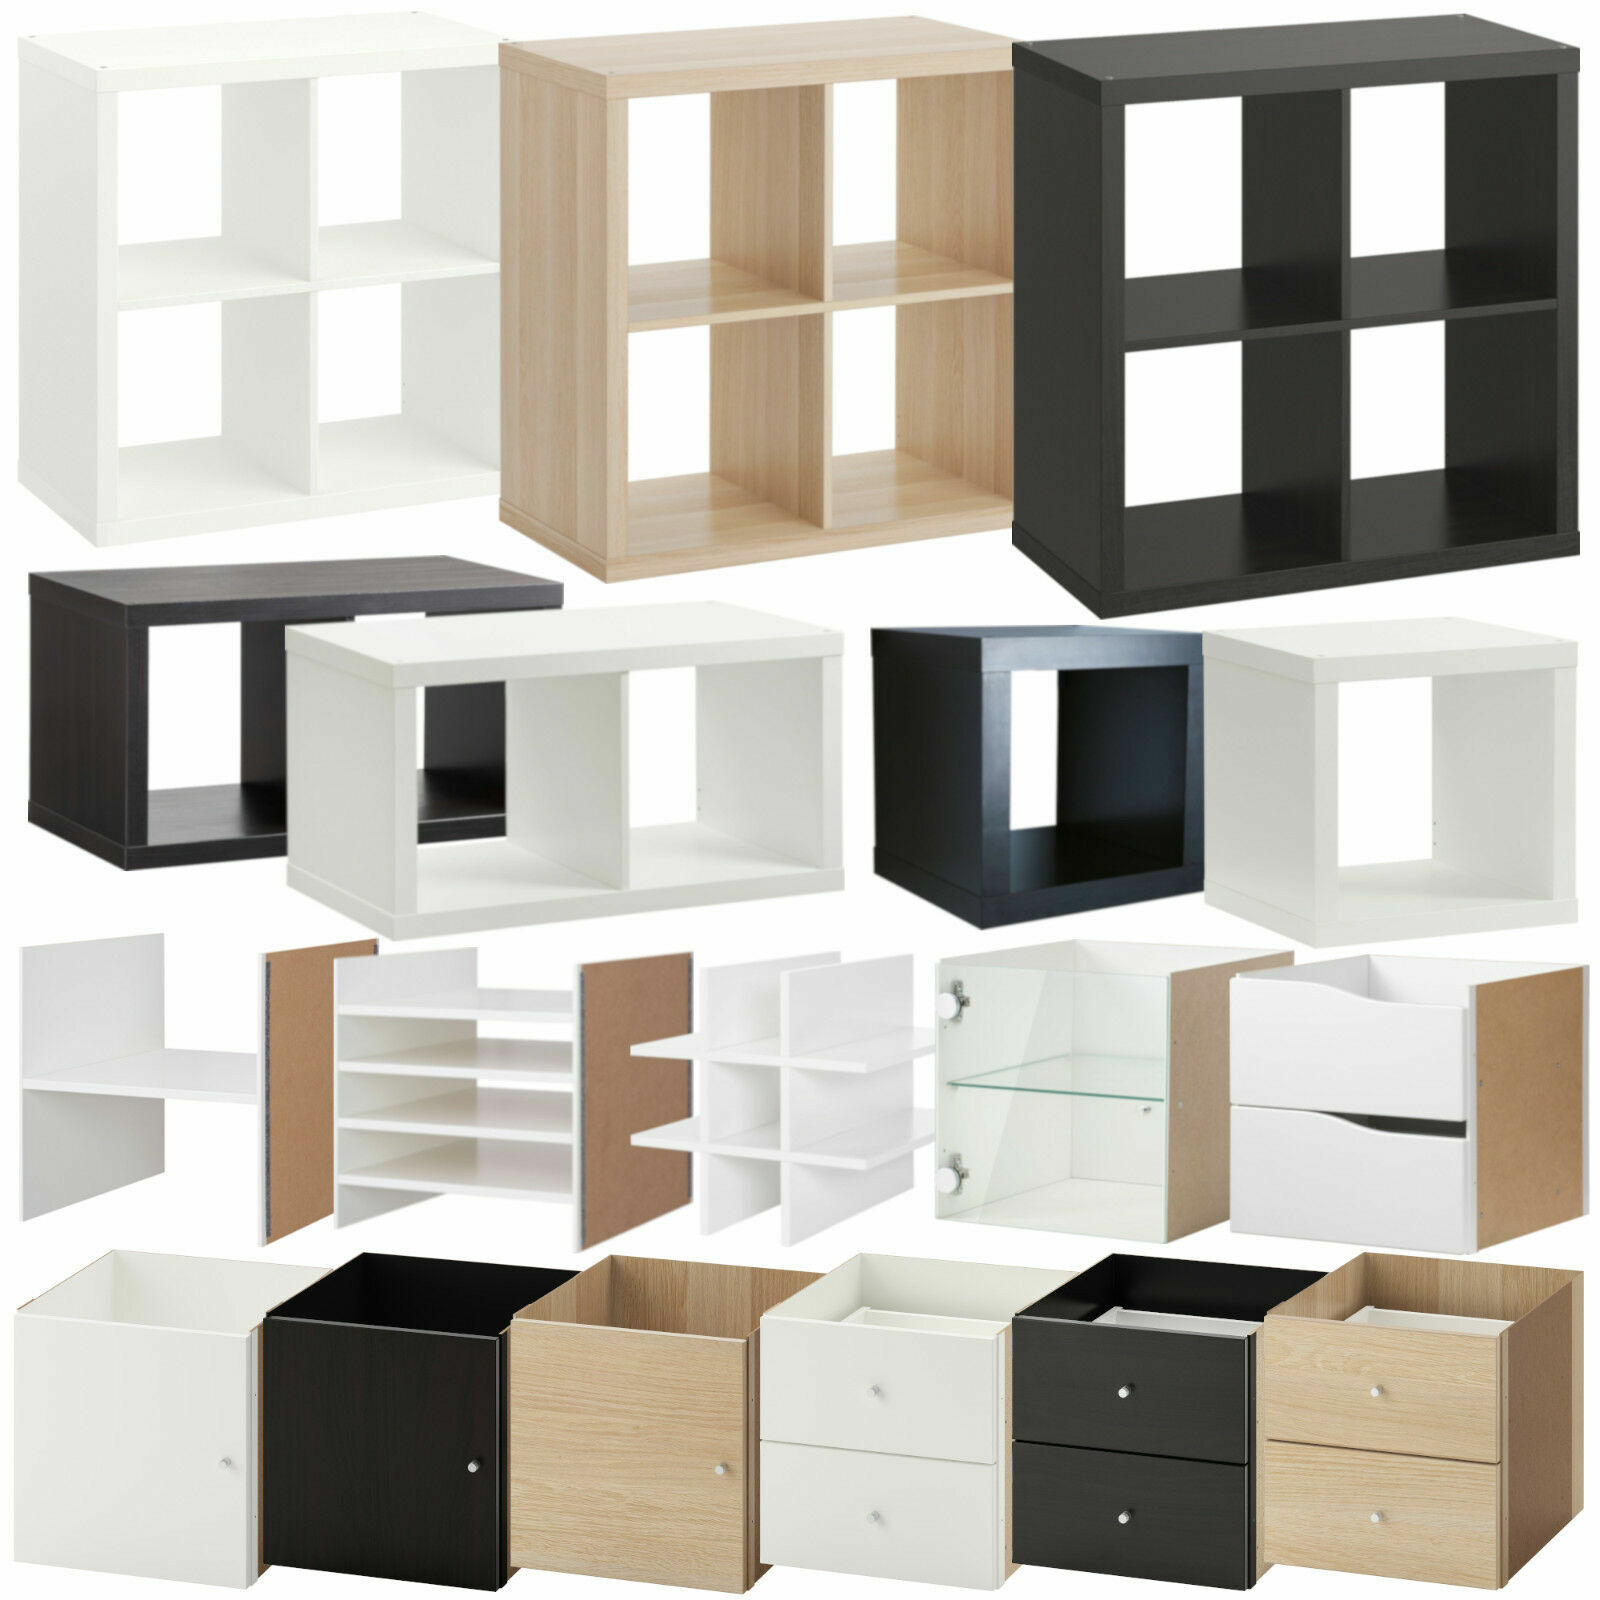 ikea kallax regal wei birke schwarzbraun 1 2 4 fach t r schublade ehem expedit eur 18 45. Black Bedroom Furniture Sets. Home Design Ideas